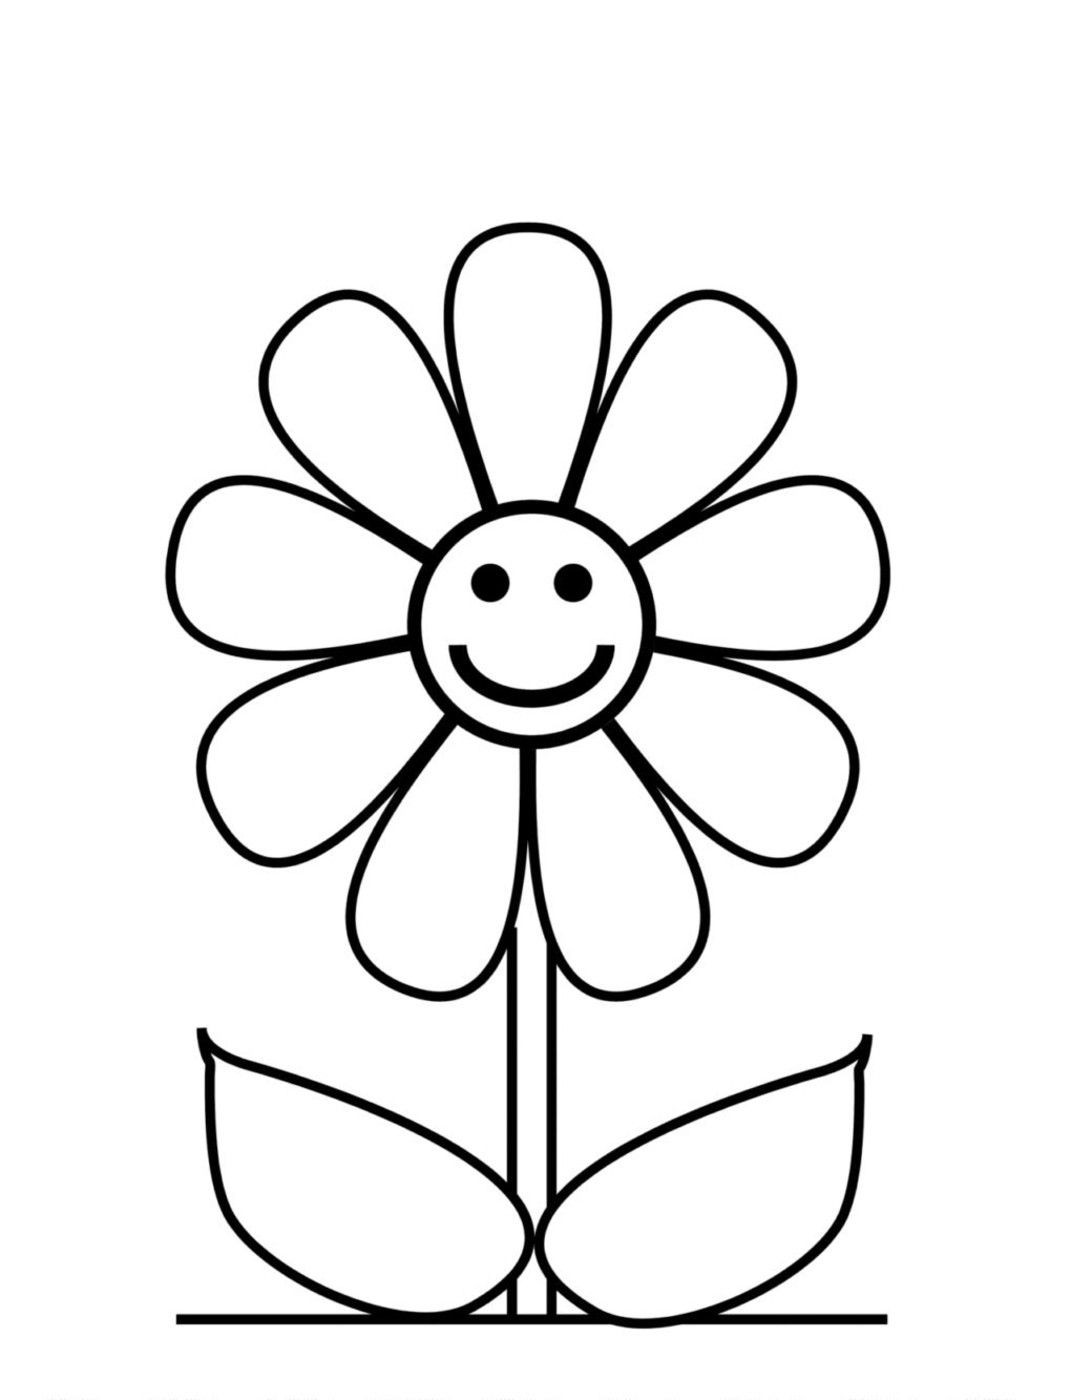 Best ideas about Flower Coloring Sheets For Girls . Save or Pin Coloring Pages For Girls Now.